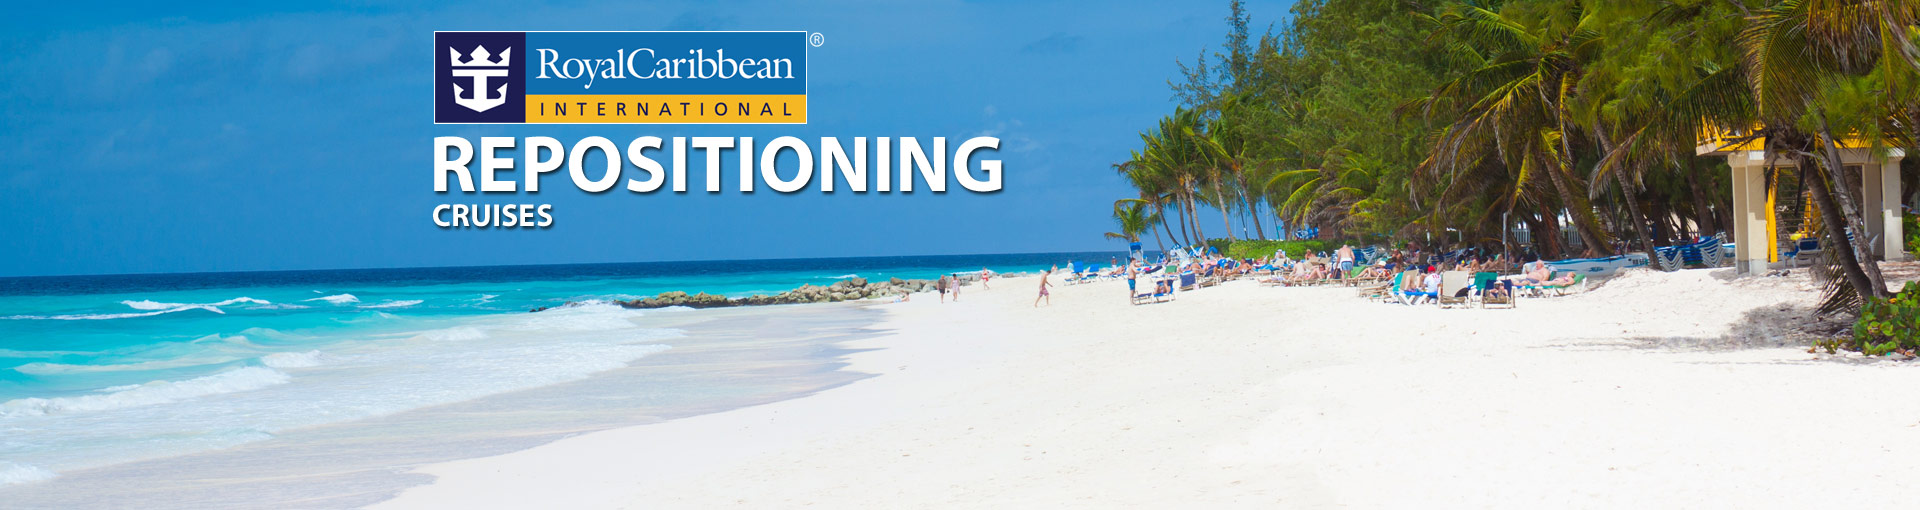 Royal Caribbean Repositioning Cruises And Repositioning - Relocation cruises